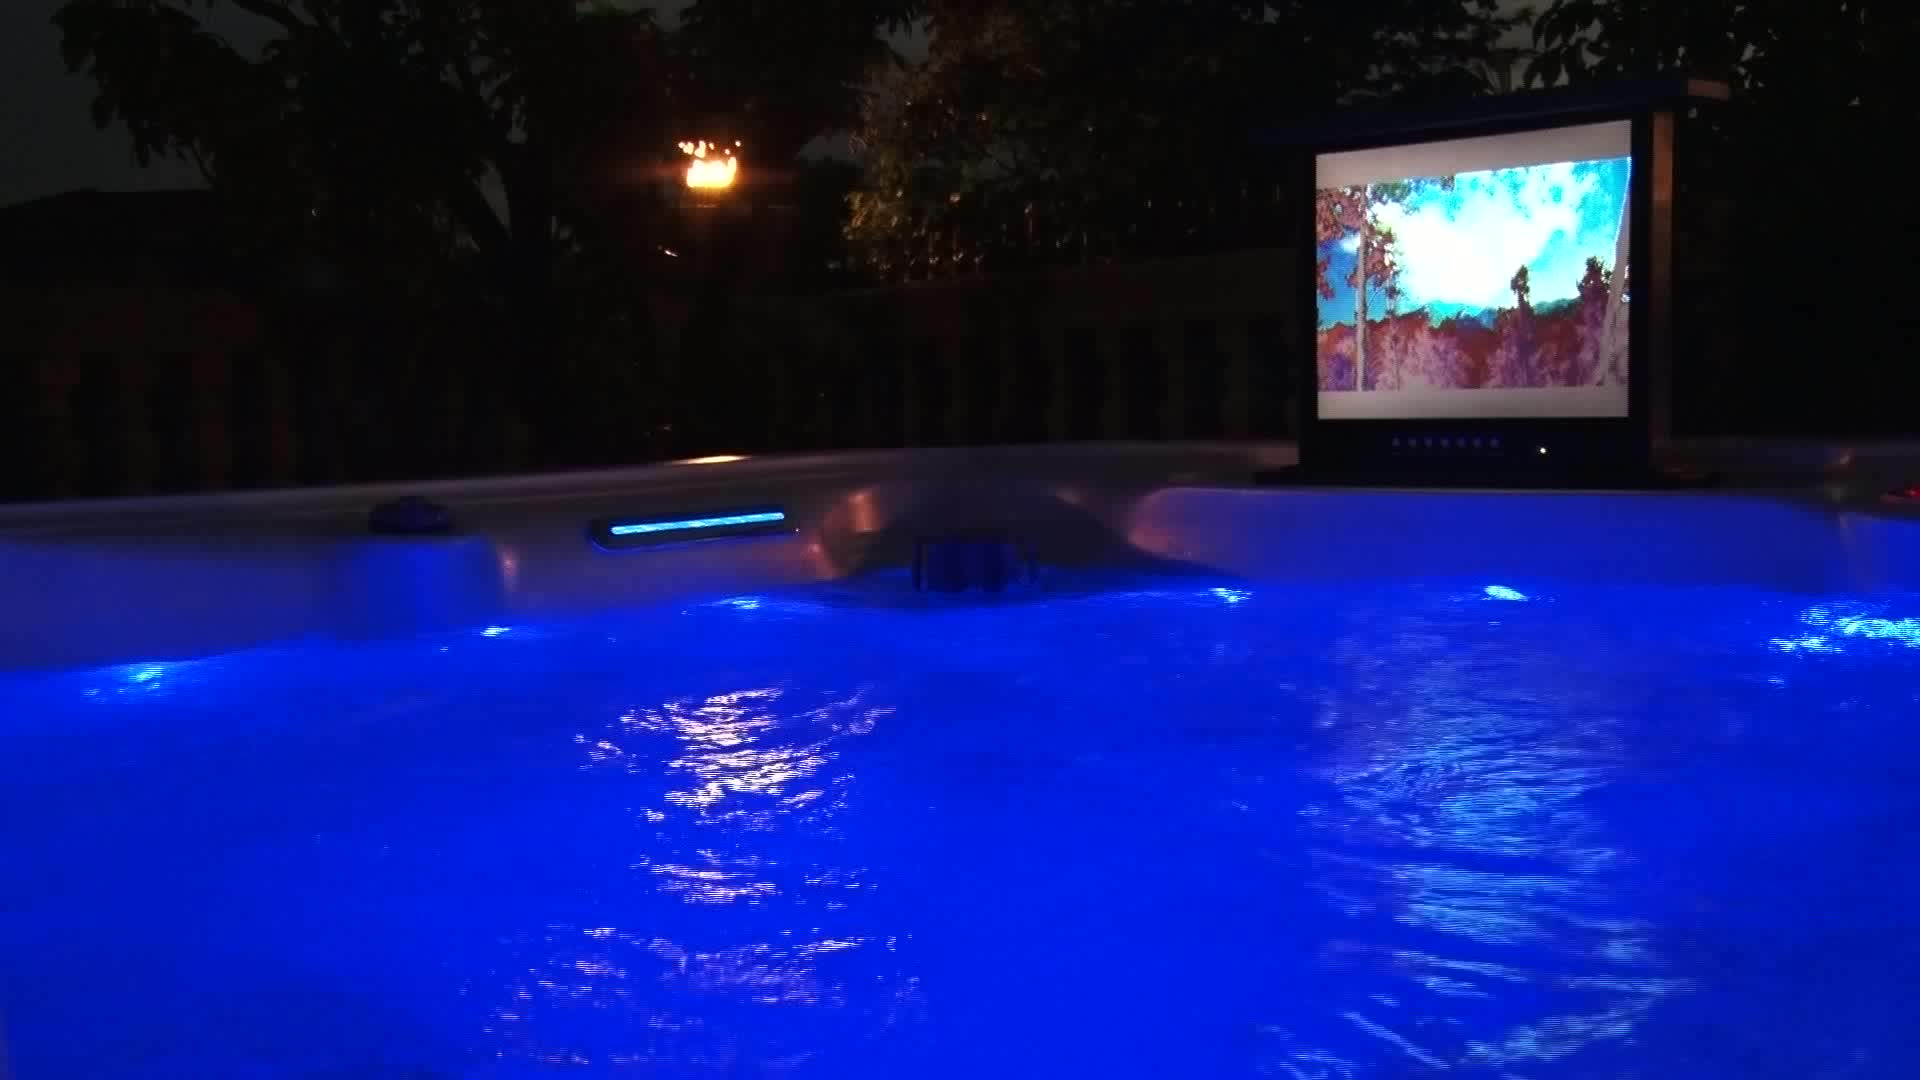 Extra large whirlpools hot tub spas twin lounger spa long spa tub